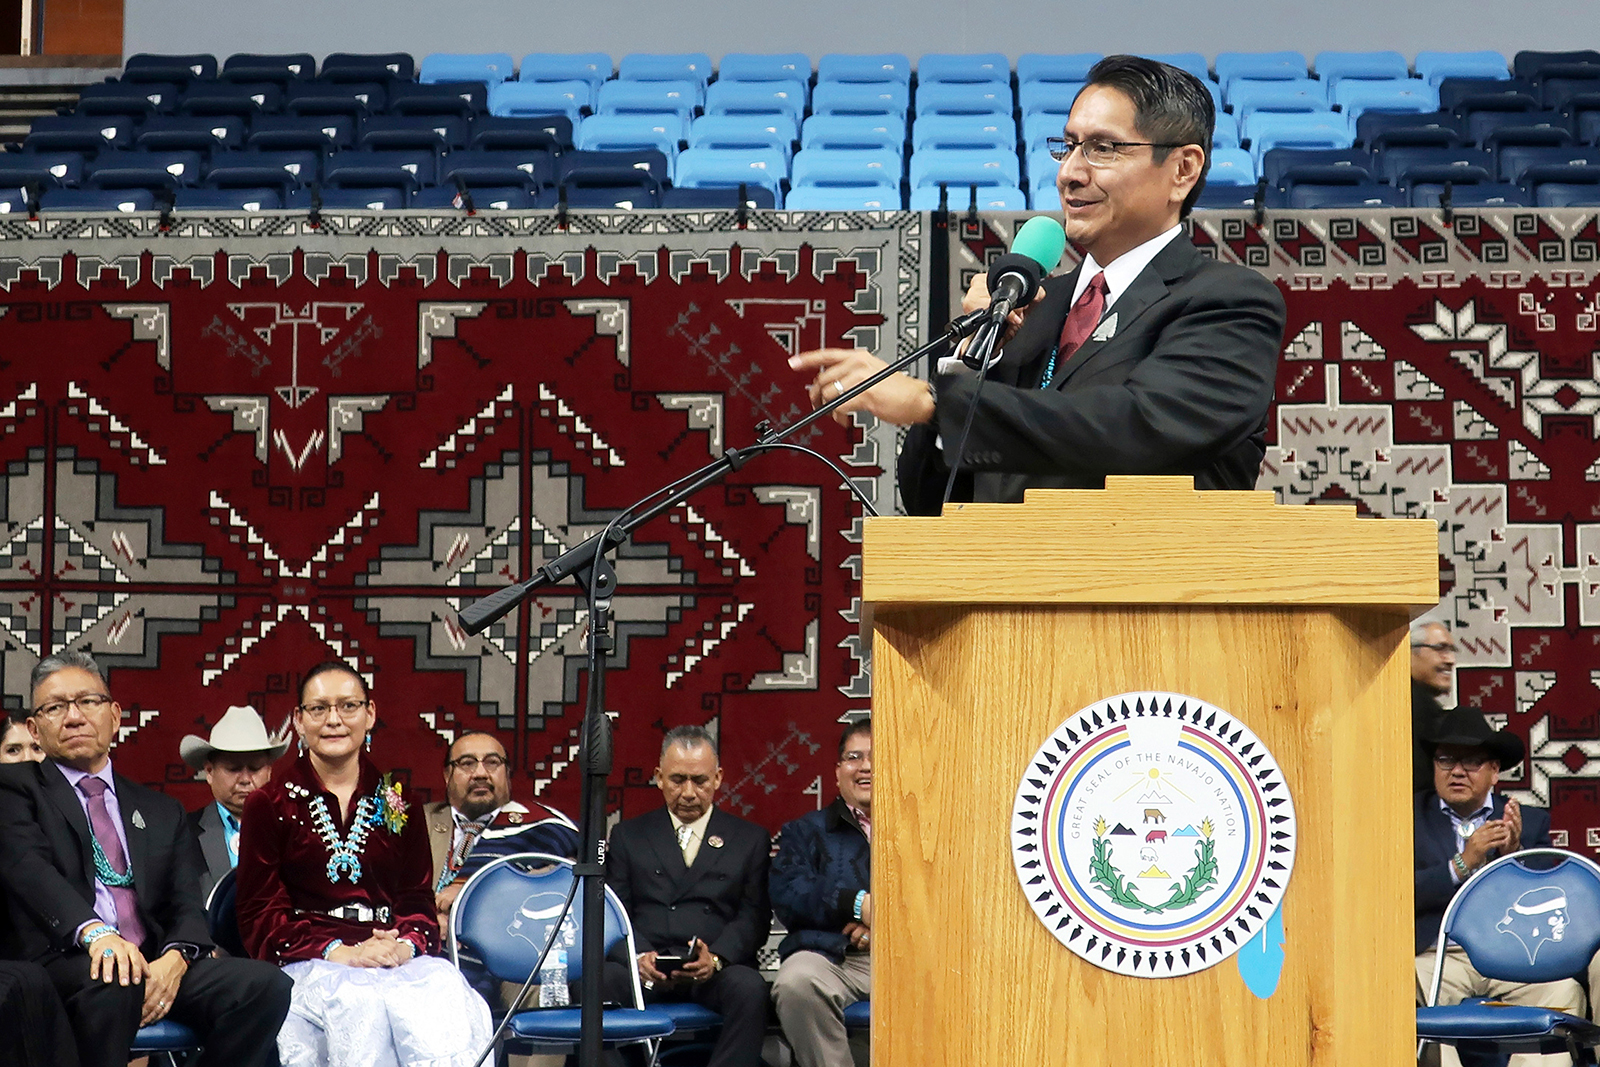 In this file photo, Jonathan Nez addresses a crowd after he was sworn in as president of the Navajo Nation in Fort Defiance, Arizona on January 15, 2019.